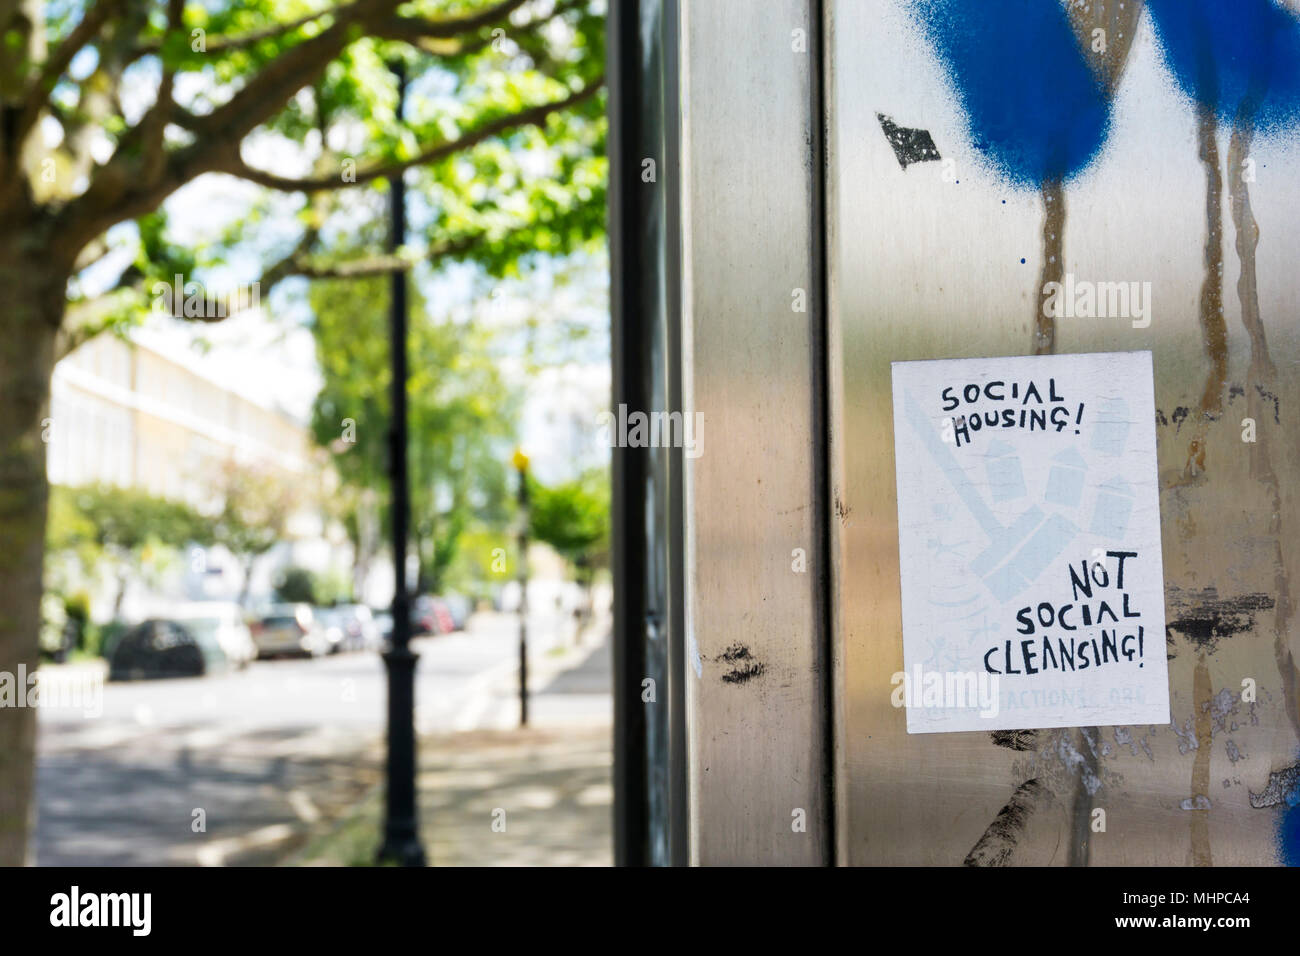 Social Housing! Not Social Cleansing! slogan on a sticker in Lambeth, South London. - Stock Image